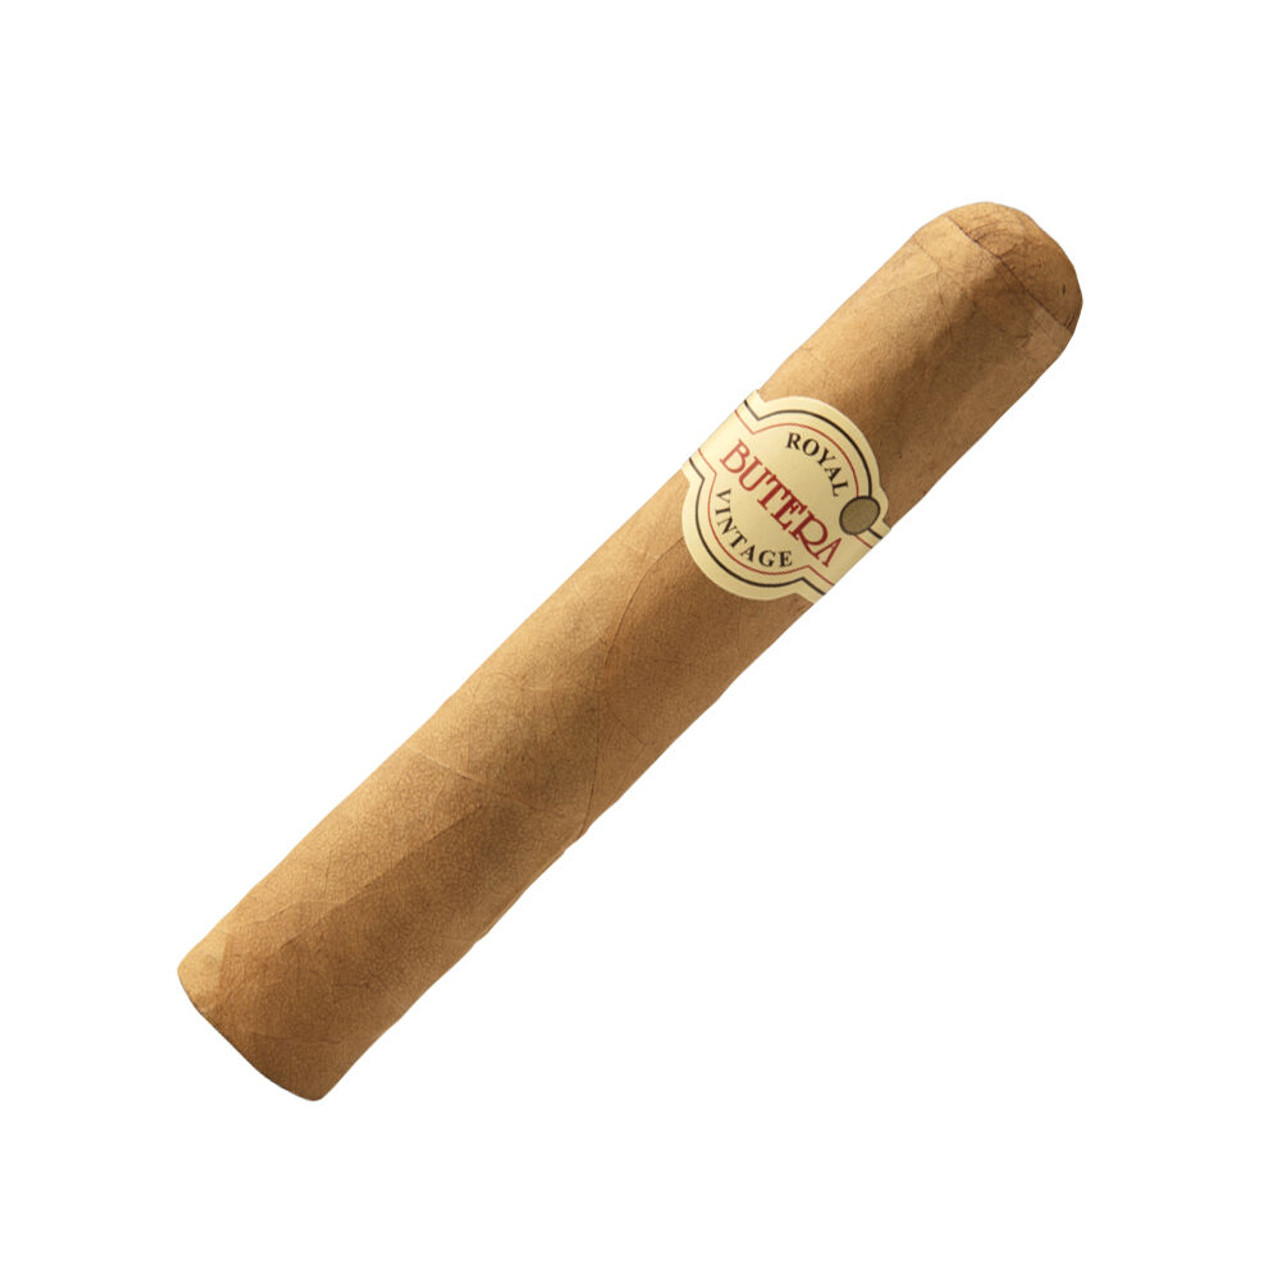 Butera Royal Vintage Bravo Corto Cigars - 4 1/2 x 50 (Box of 20)